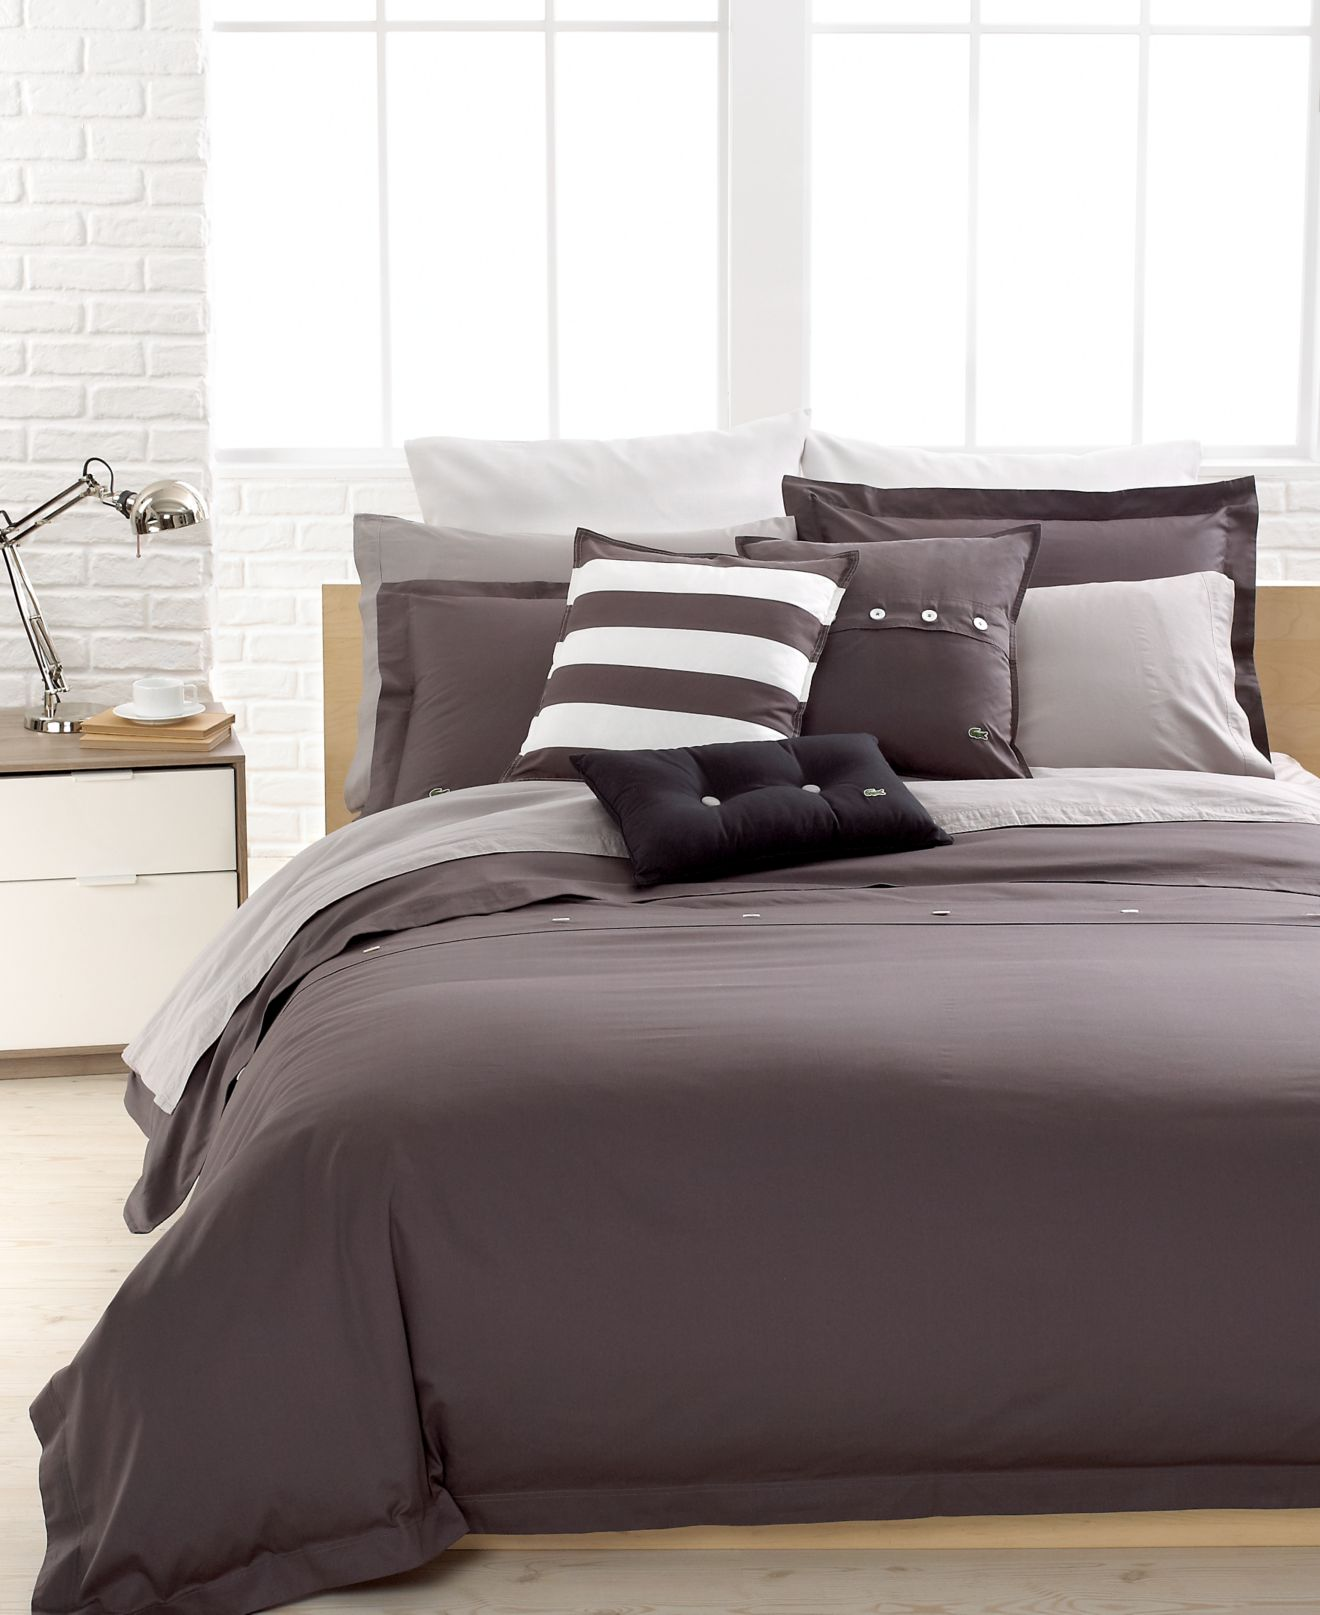 lacoste bedding, towels, and sheets - macy's registry